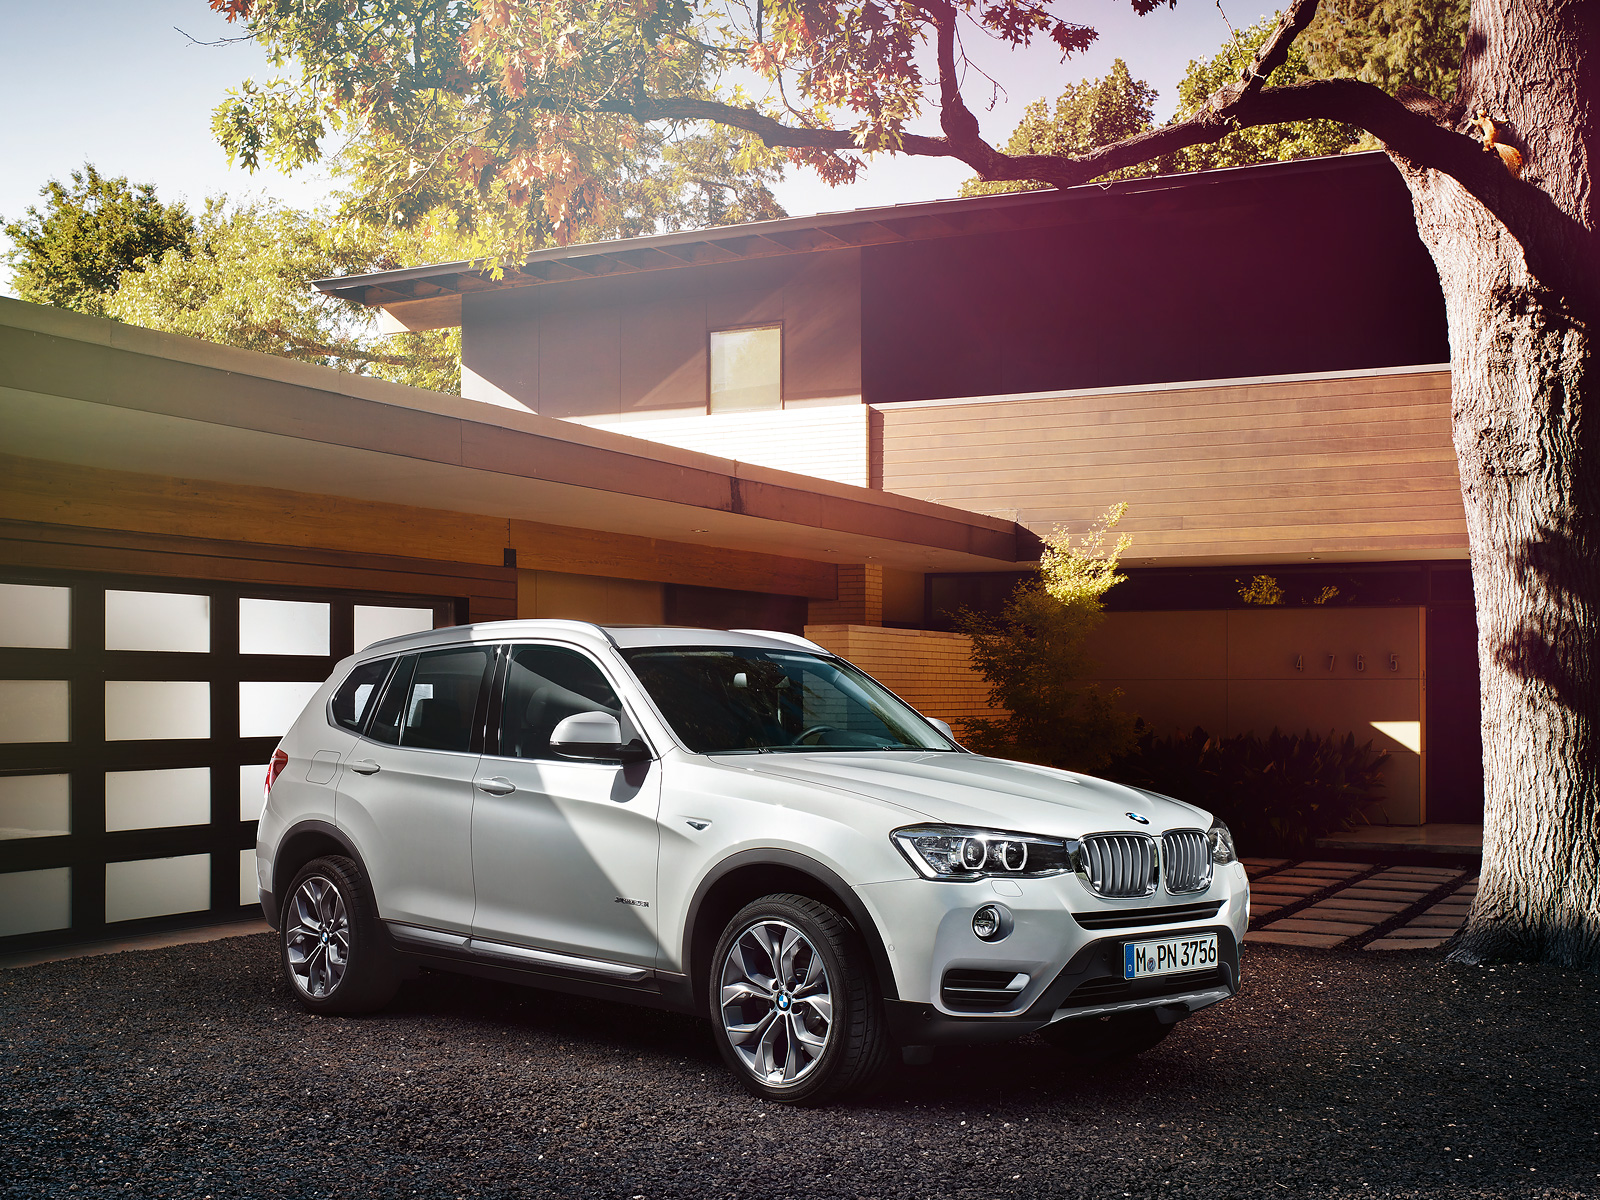 BMW X3 facelift launched at Rs. 44.90 lakh